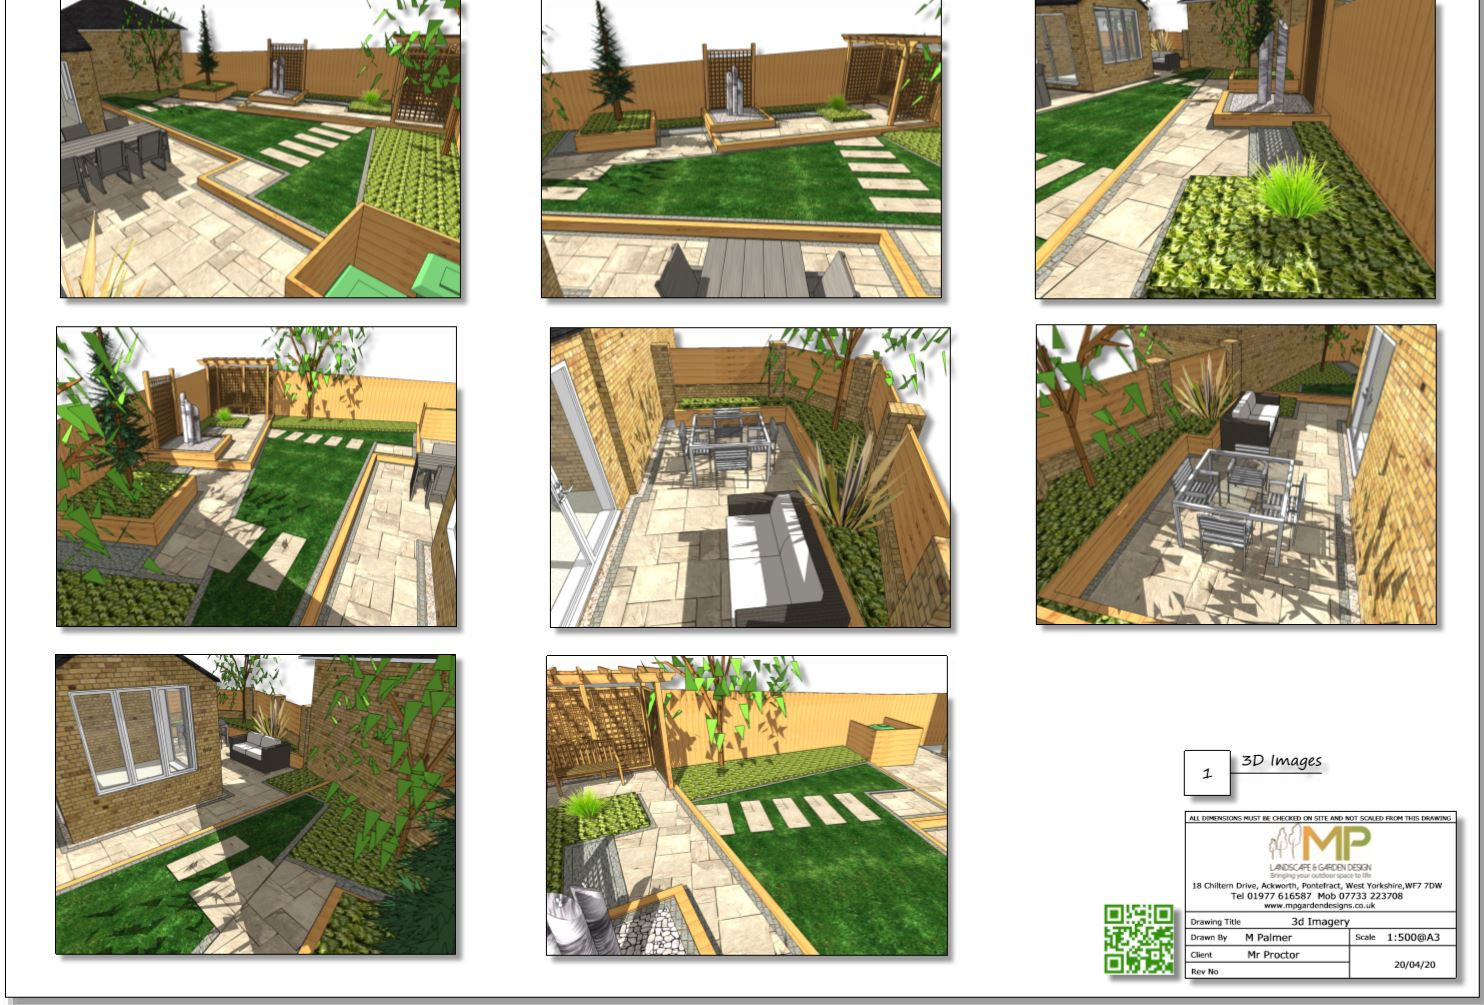 4, Concept plan-1 3D images for a rear garden in South Kirkby